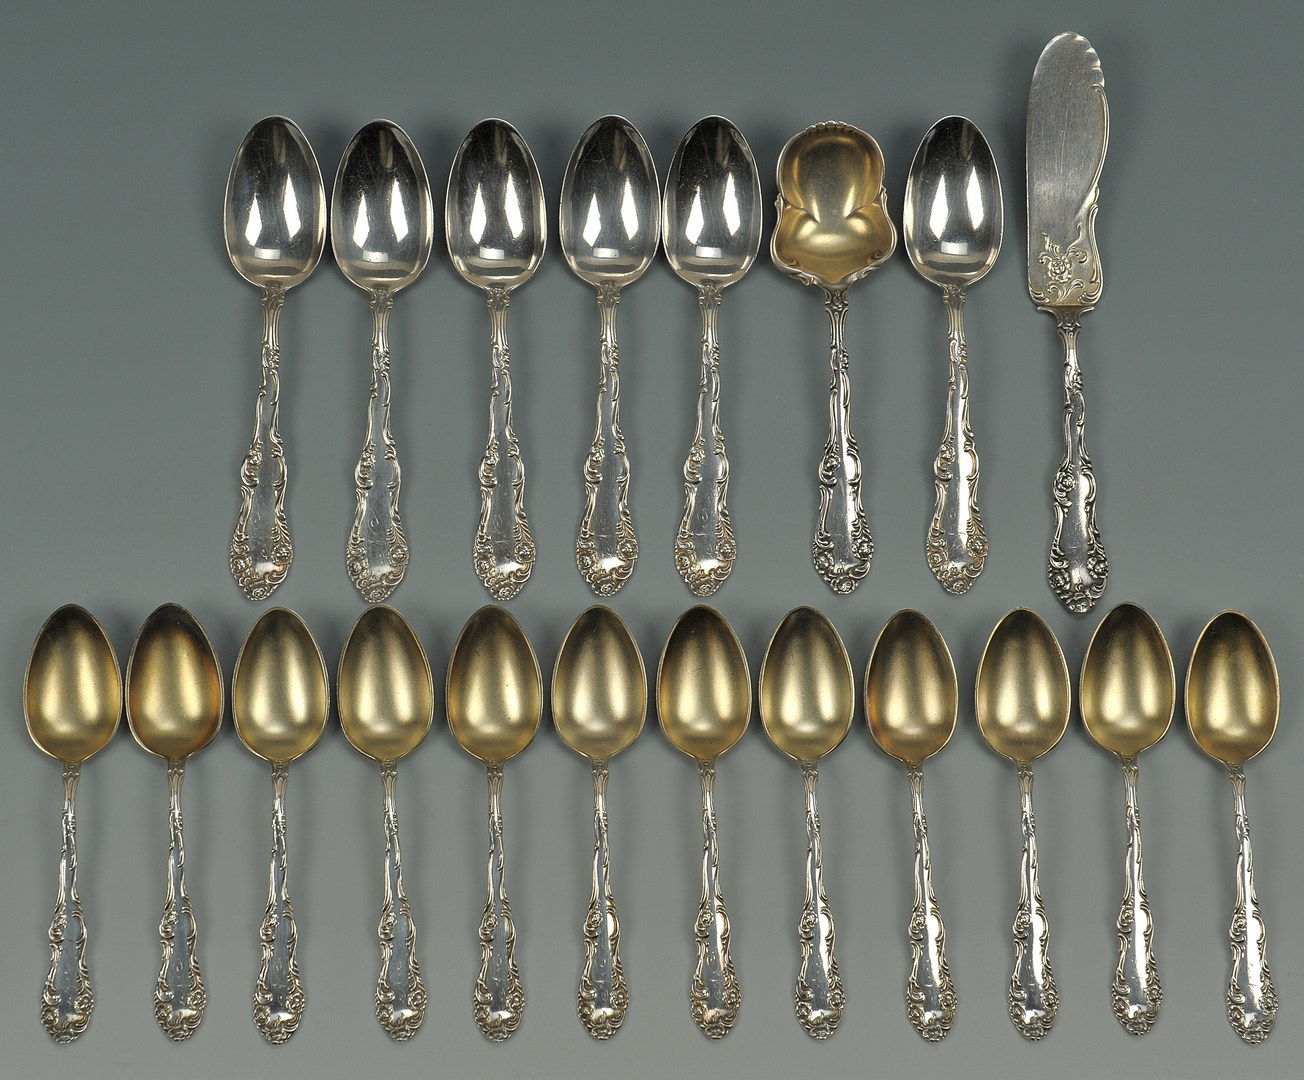 Lot 508: Towle Old English Sterling Flatware, 20 pcs